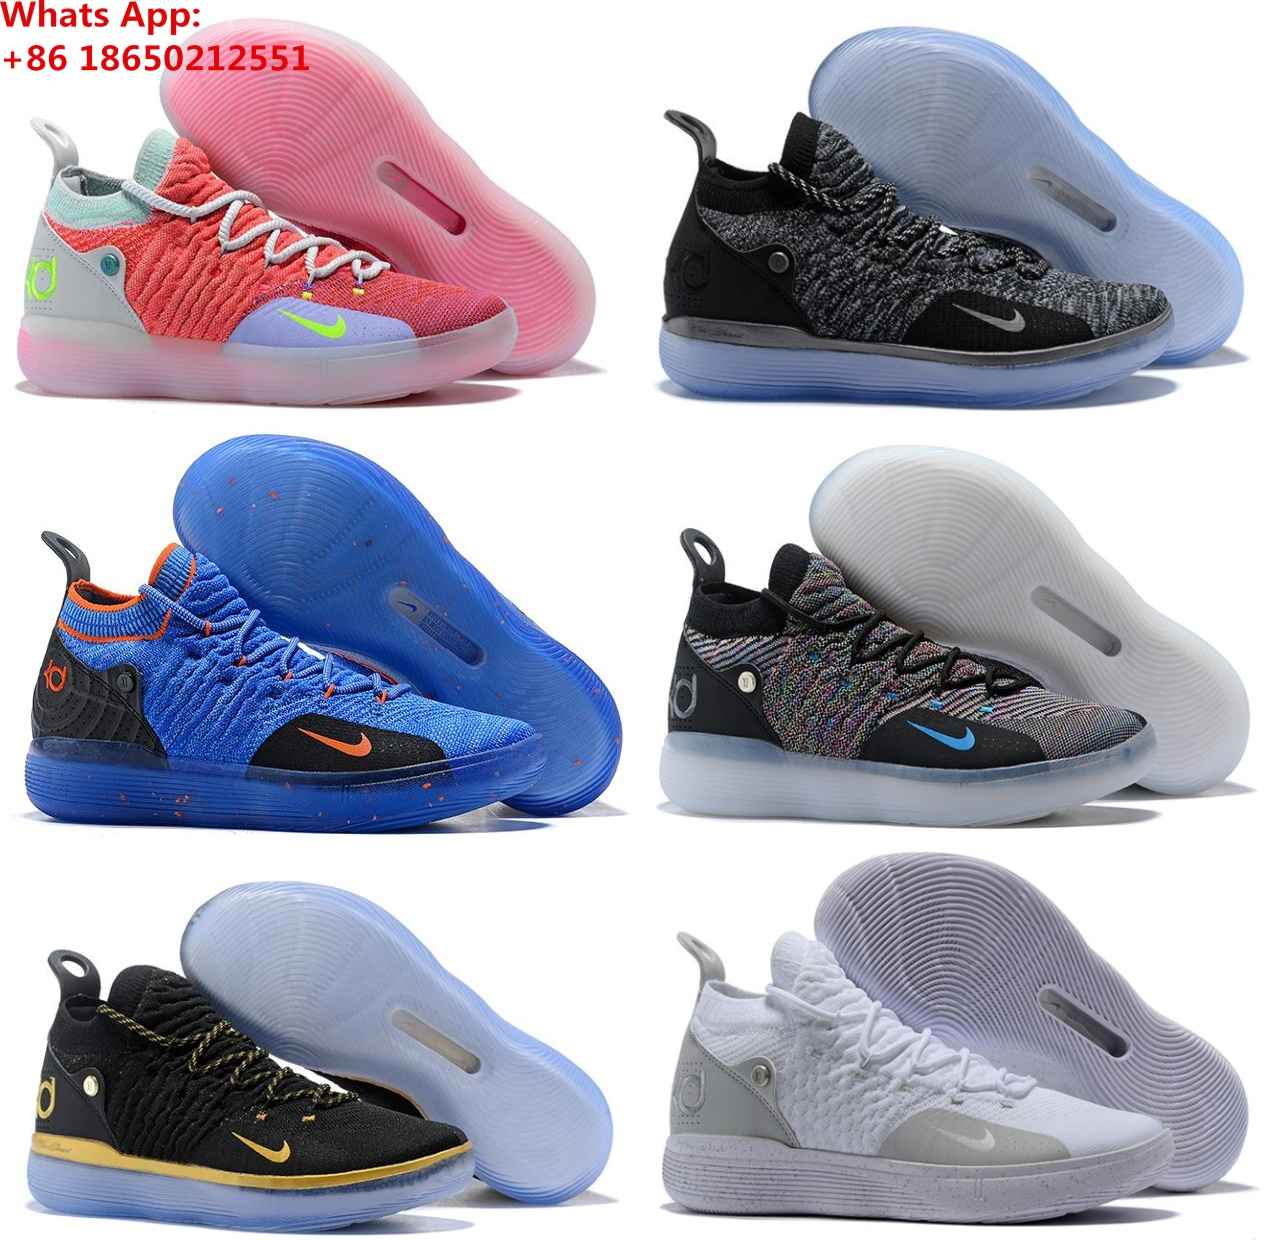 e0b23c6b3e1 Zoom KD 11 EP XI EYBL Peach Jam Hot Punch Kevin Durant Men KD11 Basketball  Shoes-in Basketball Shoes from Sports   Entertainment on Aliexpress.com